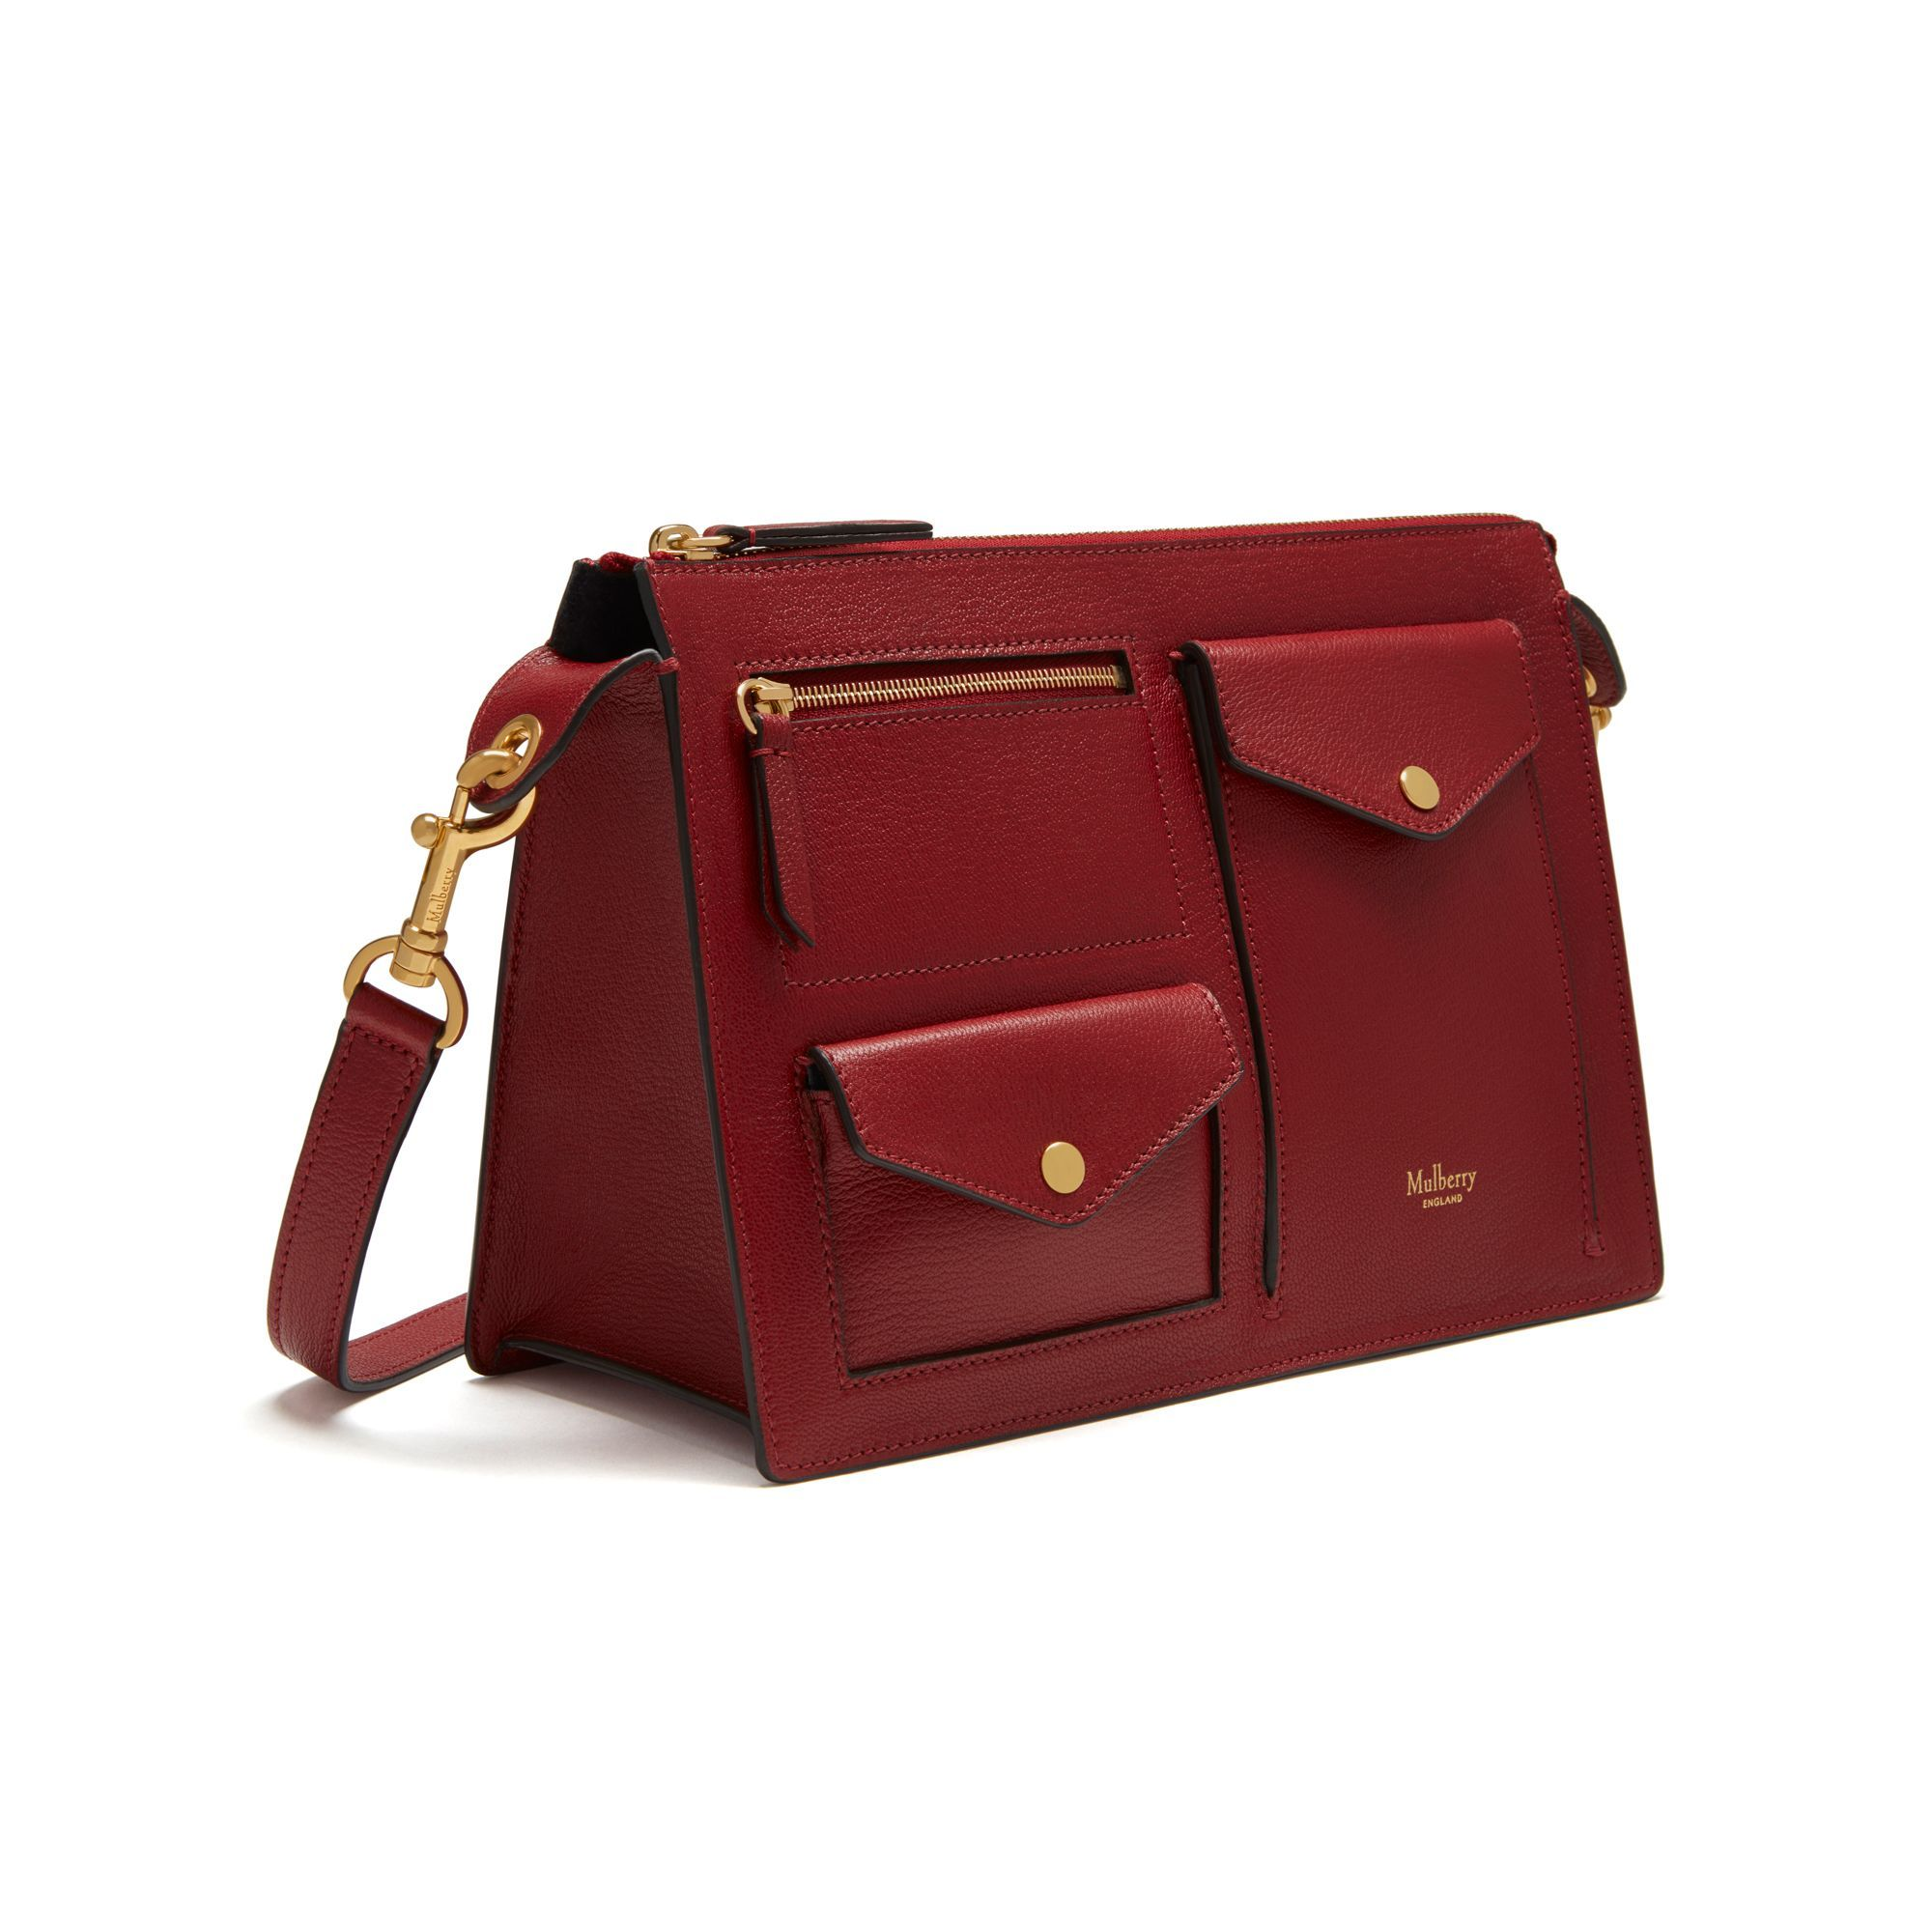 Mulberry   Cherwell Satchel Bag Sale, Beautiful Bags, Satchel, Crossbody  Bags, Dapper 713c2c1eb8